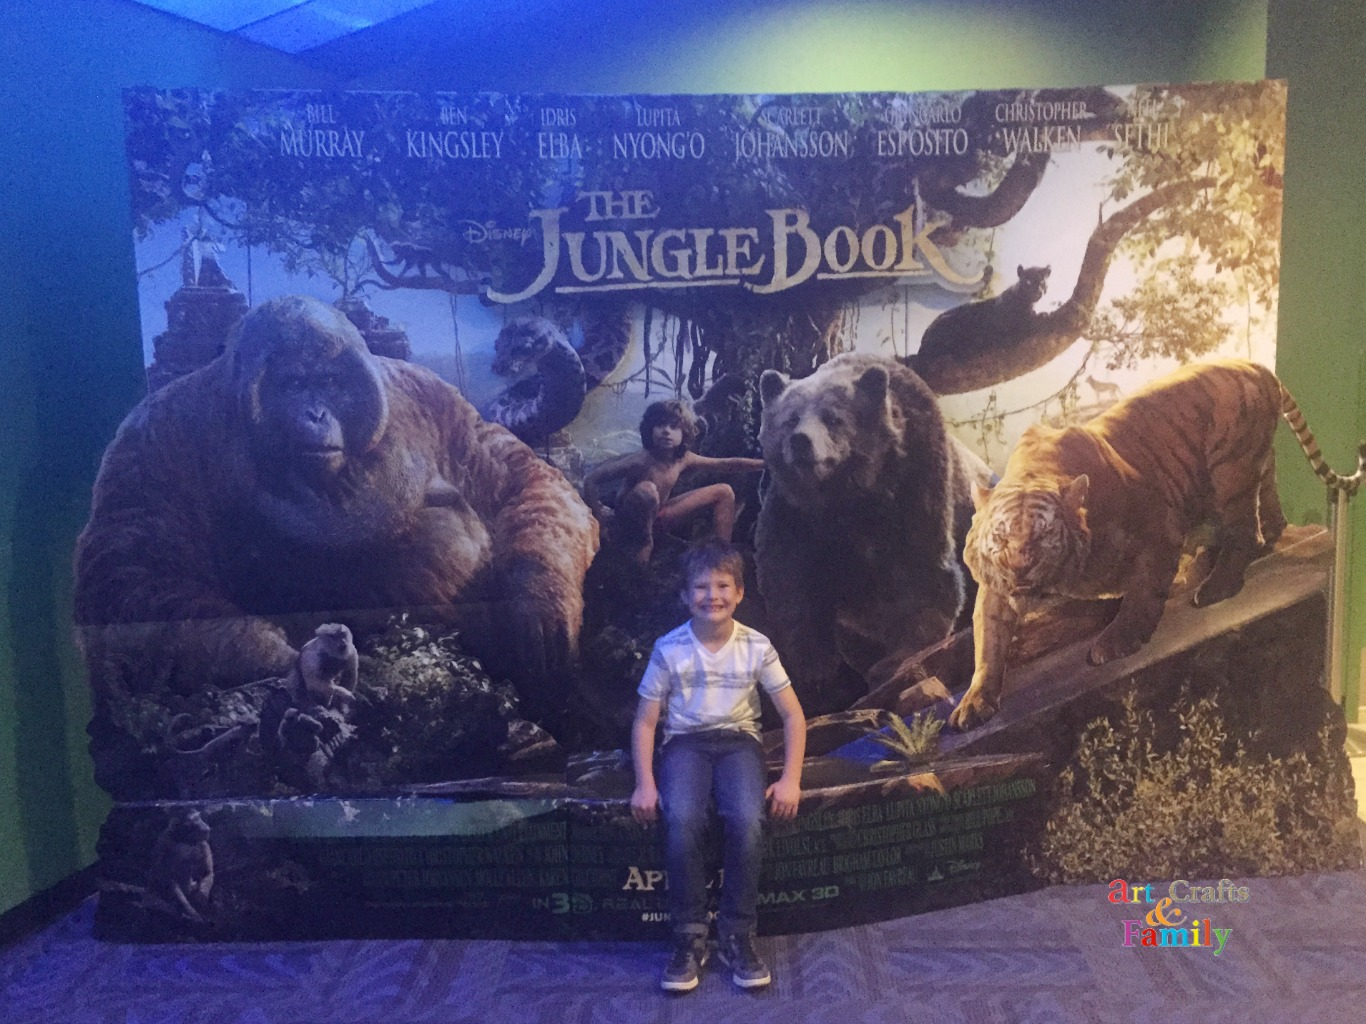 Willowbrook Amc 24 See The Jungle Book In Dolby Cinema At Amc Prime Art Crafts Amp Family